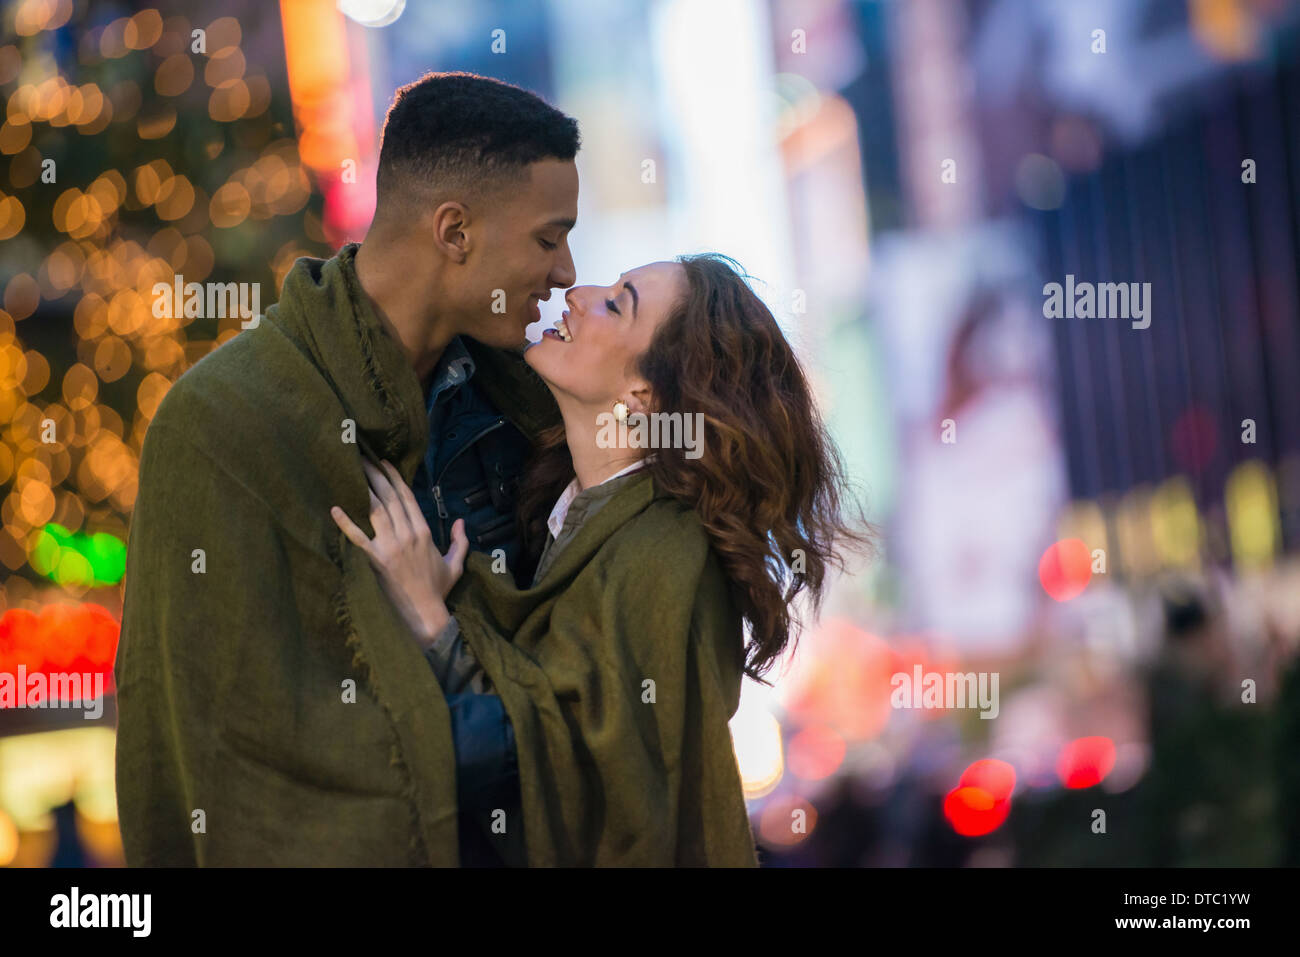 Young tourist couple wrapped in blanket, New York City, USA - Stock Image